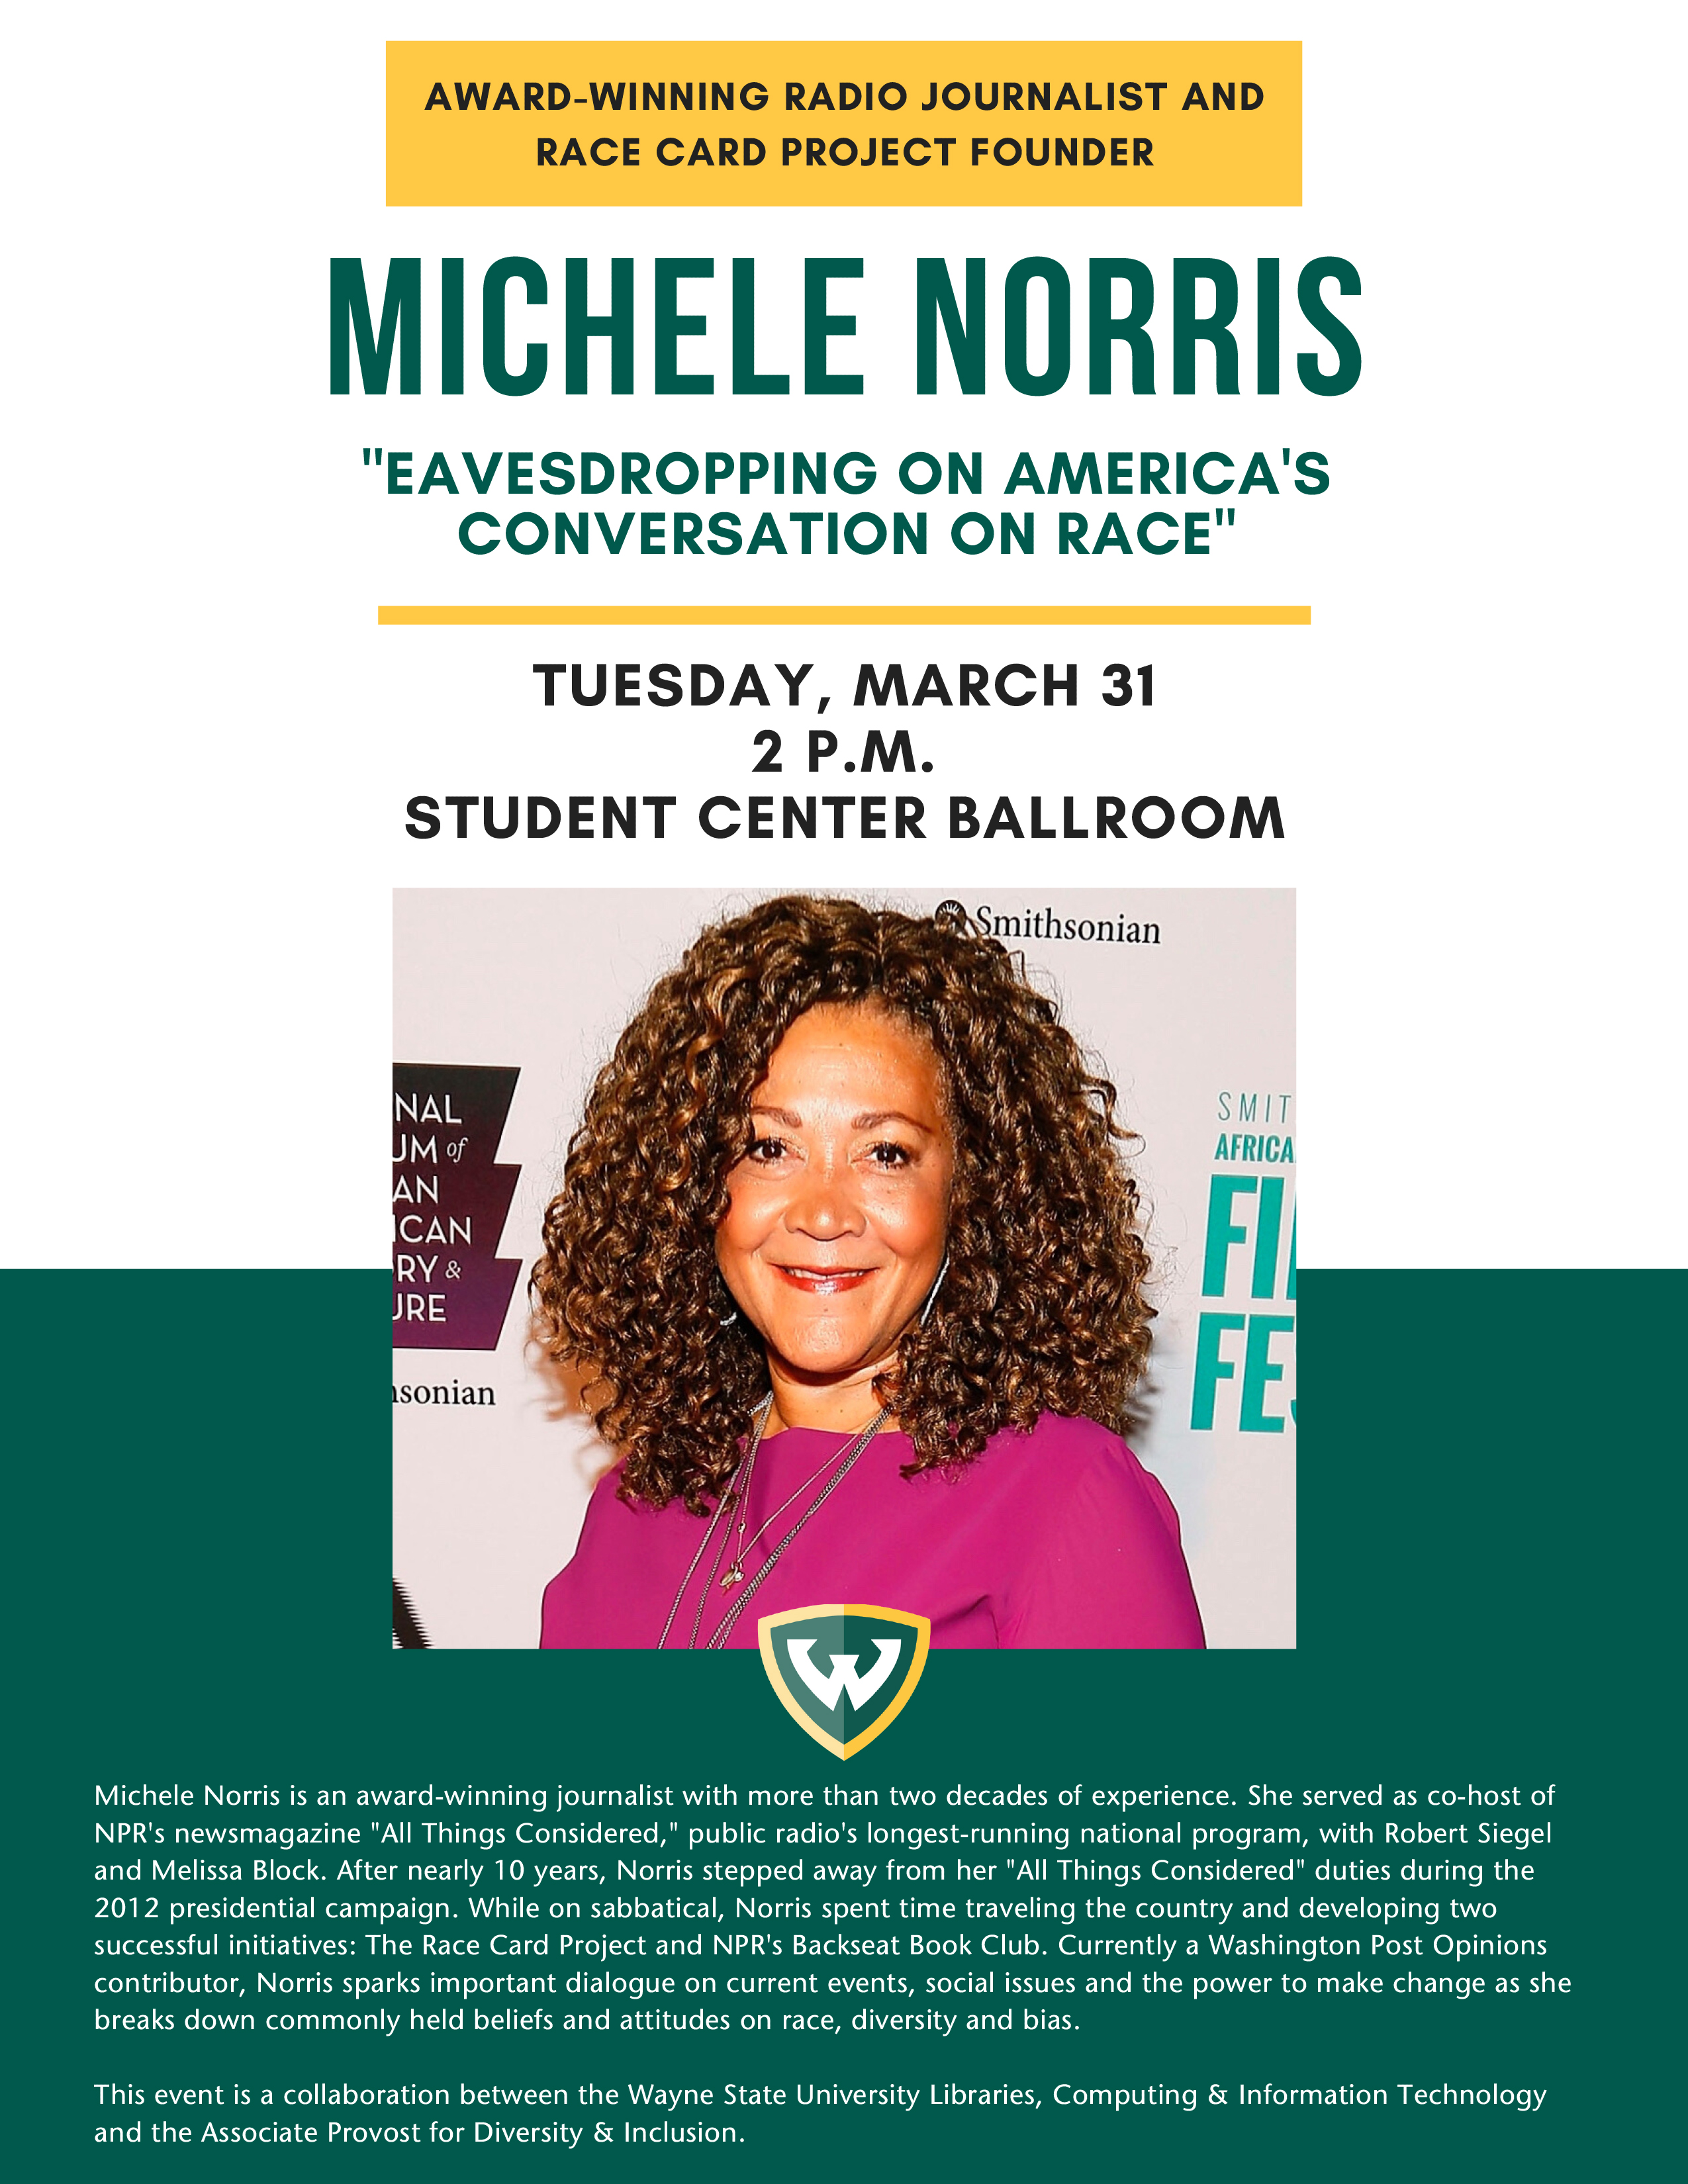 Michele Norris: Eavesdropping on America's Conversation on Race